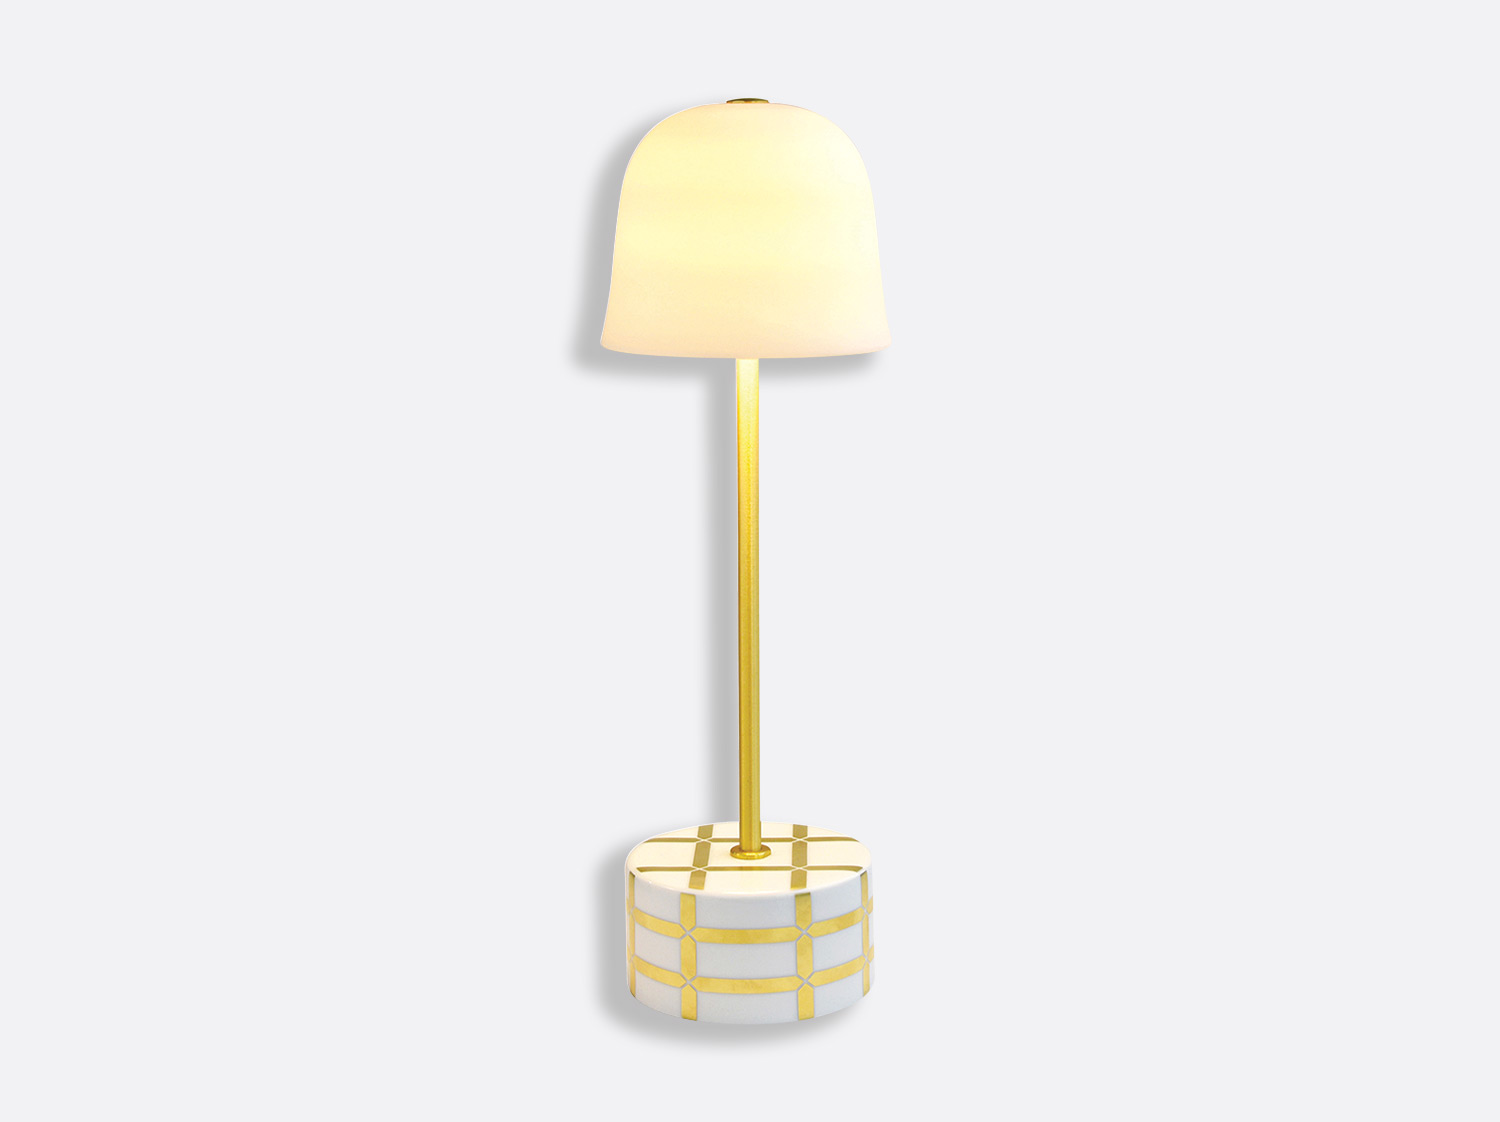 China Maillage gold of the collection Campanule | Bernardaud